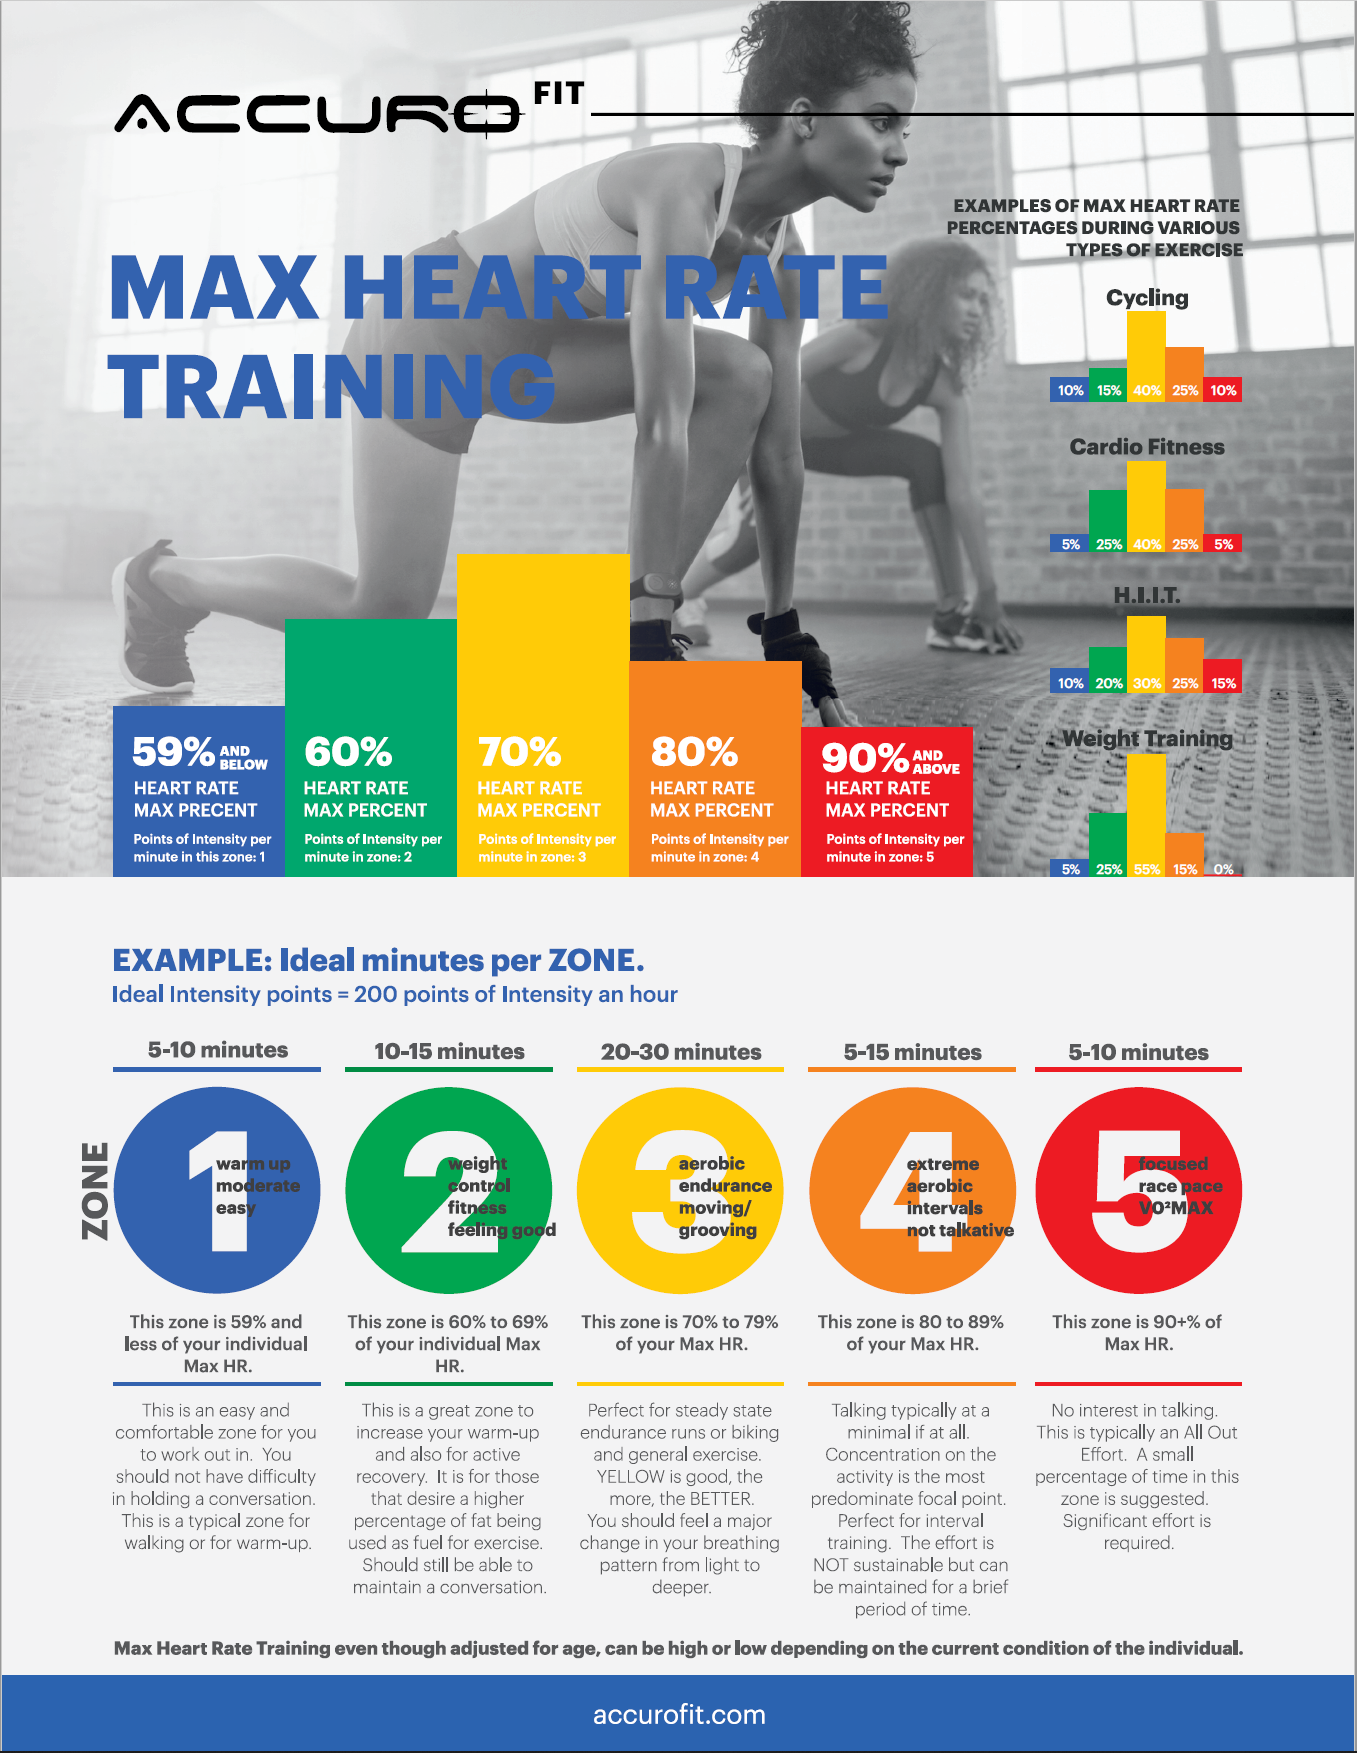 Max Heart Rate Training